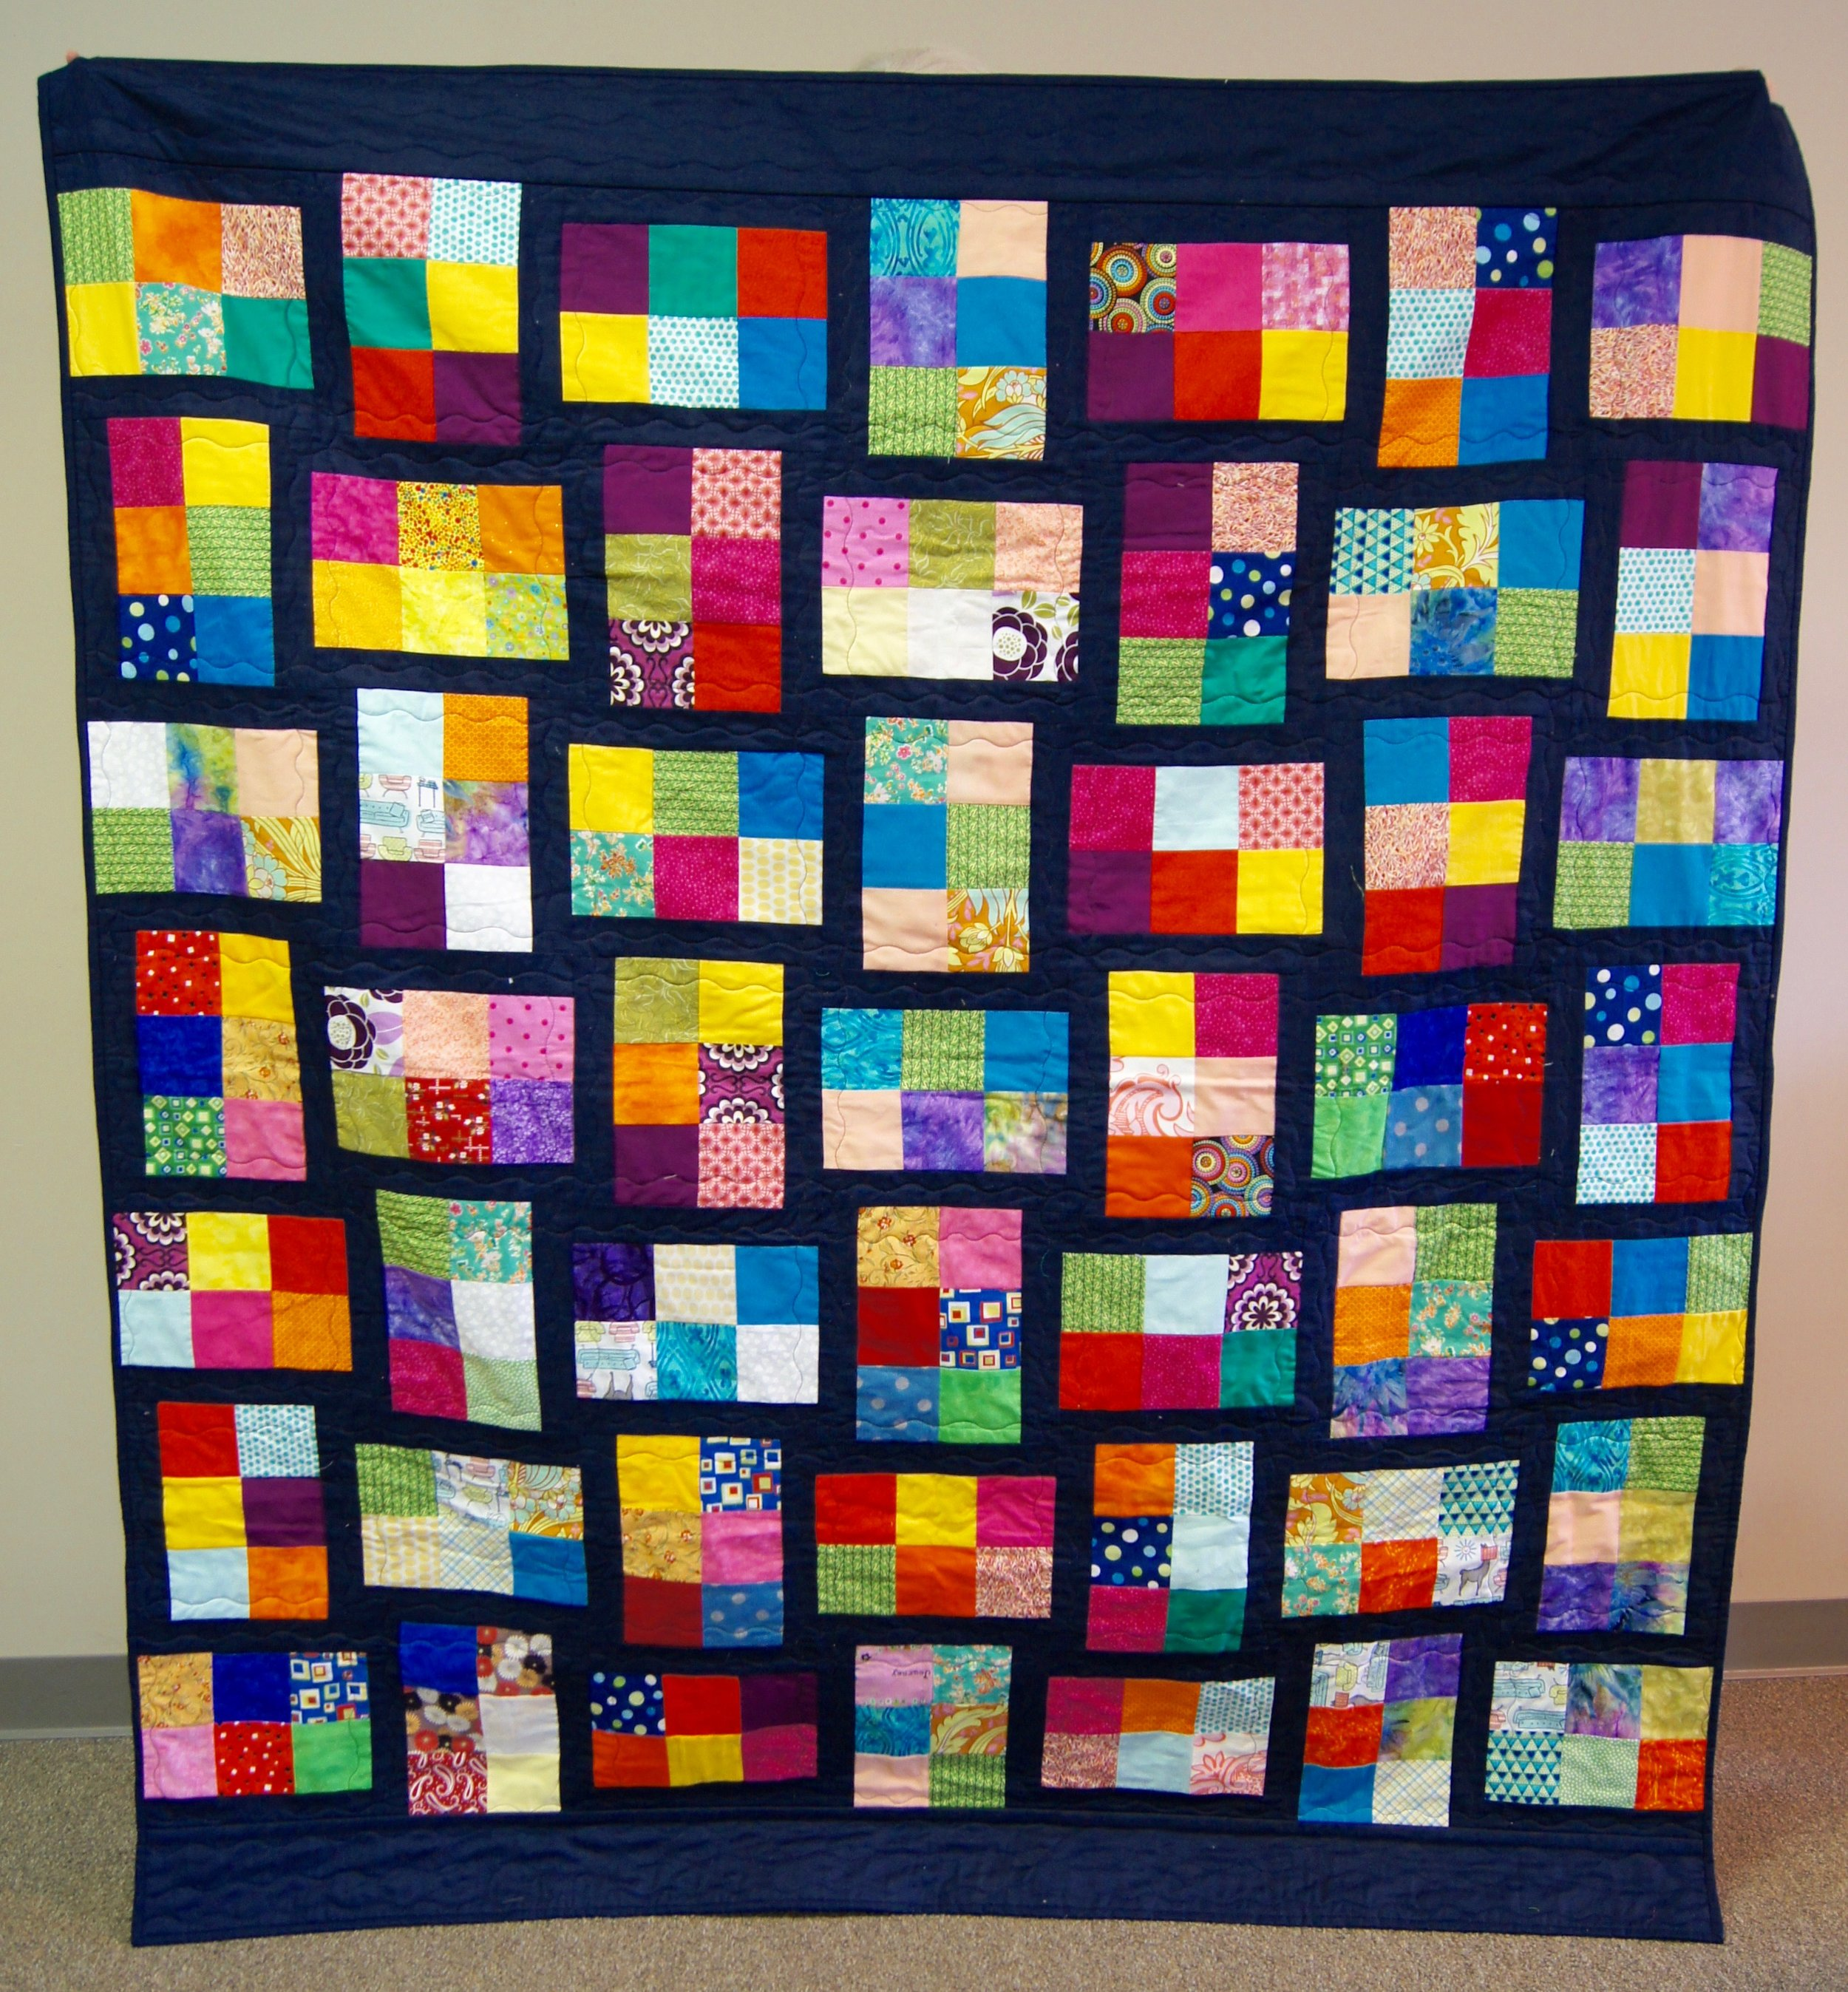 Our latest Habitat for Humanity quilt